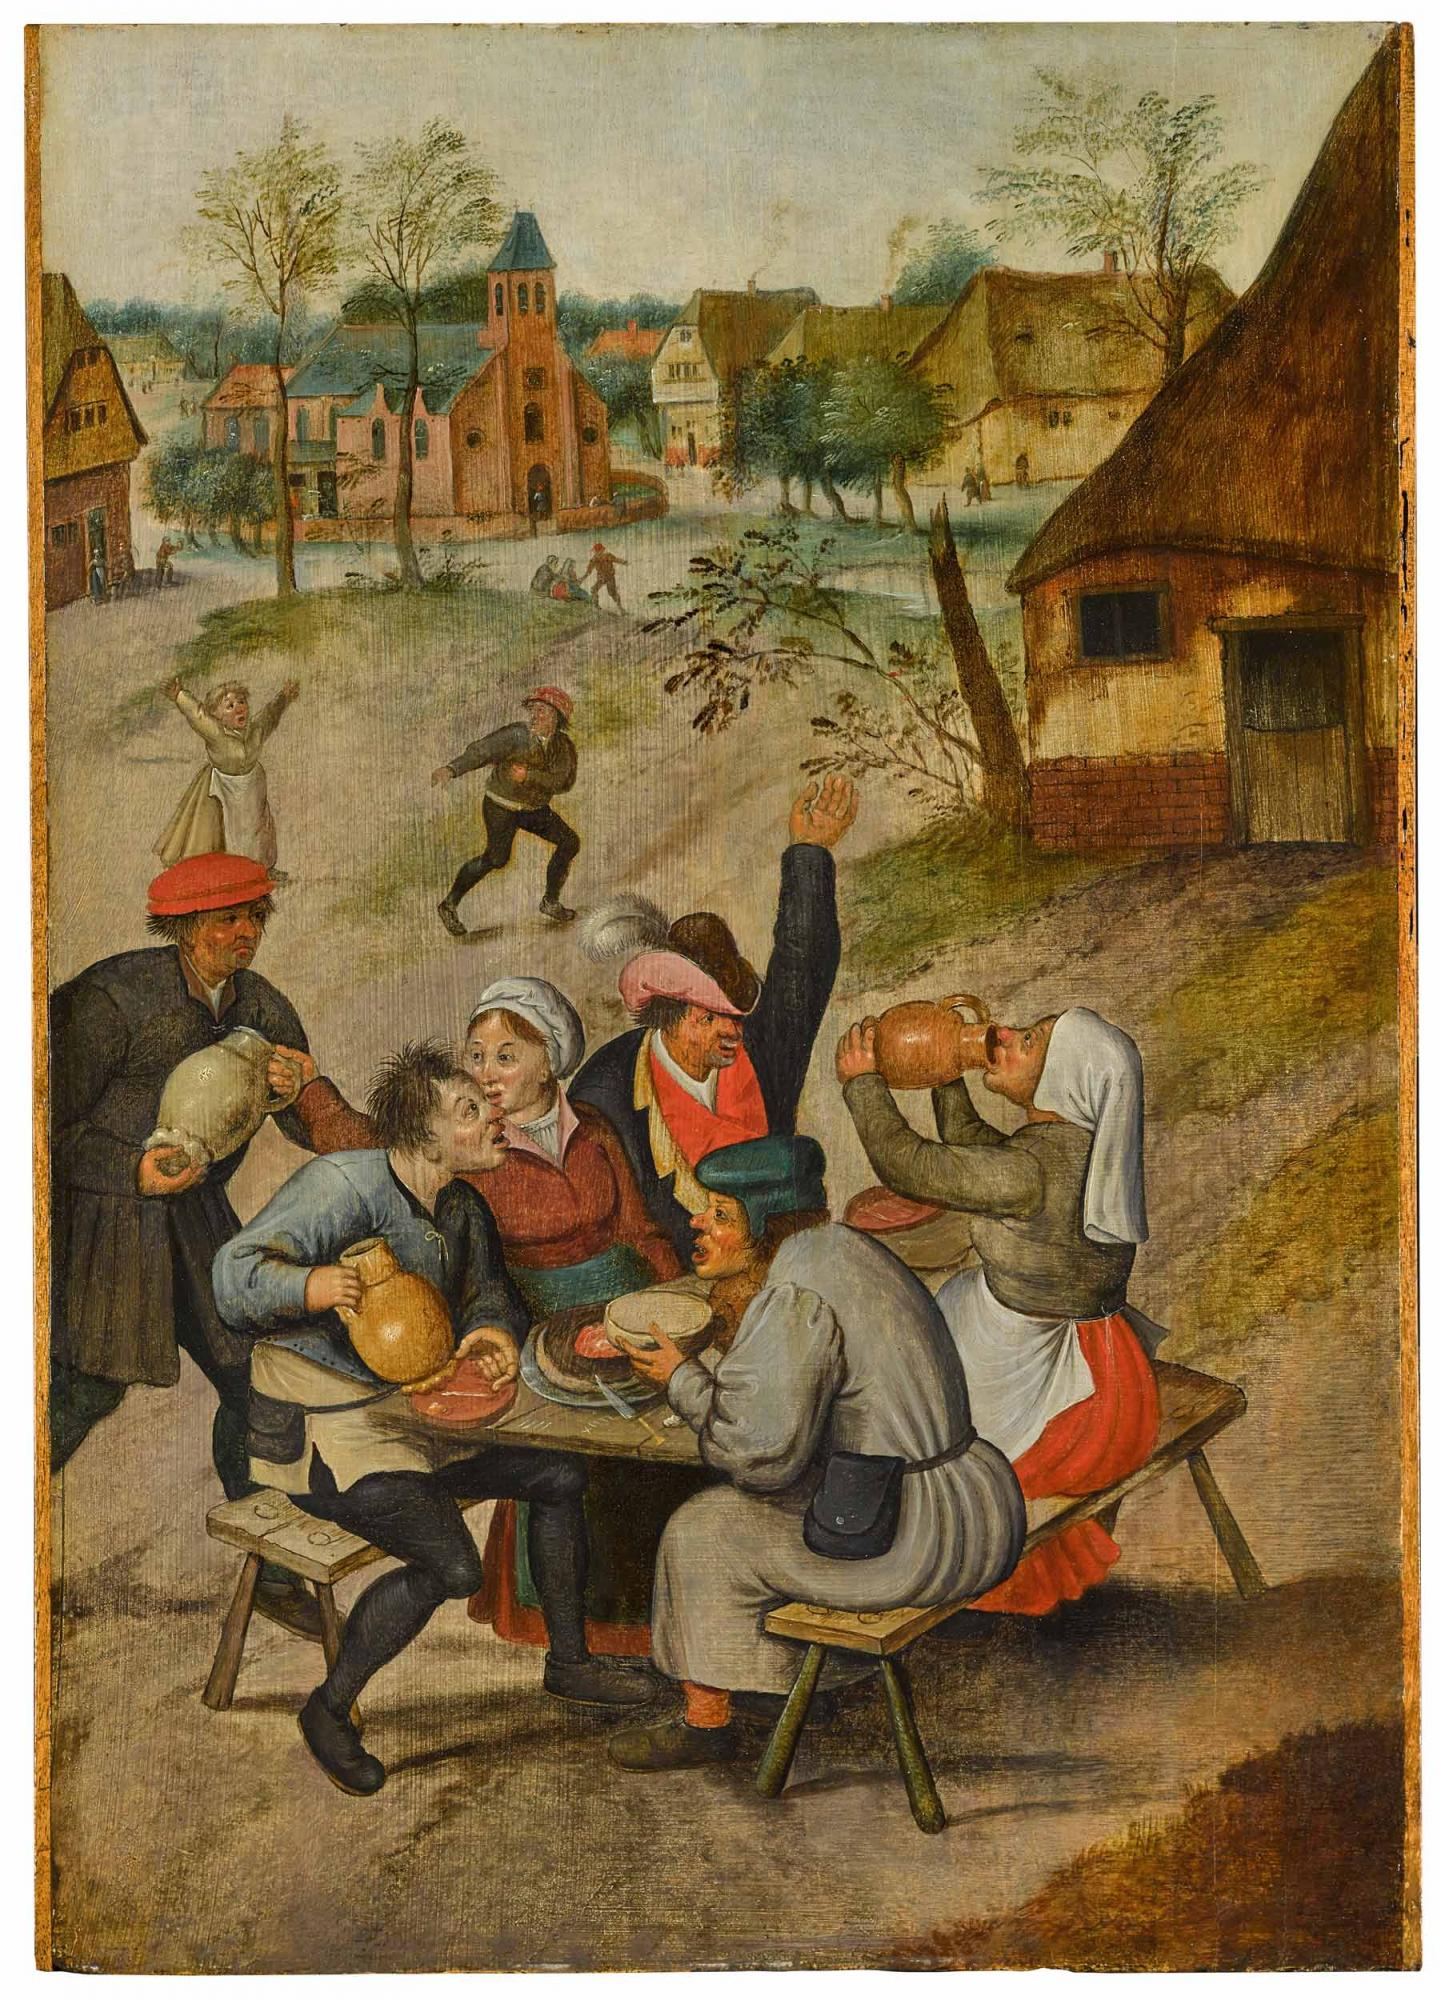 Lot-25-Pieter-Brueghel-the-Younger-A-Village-Scene-with-Peasants-Carousing.jpg